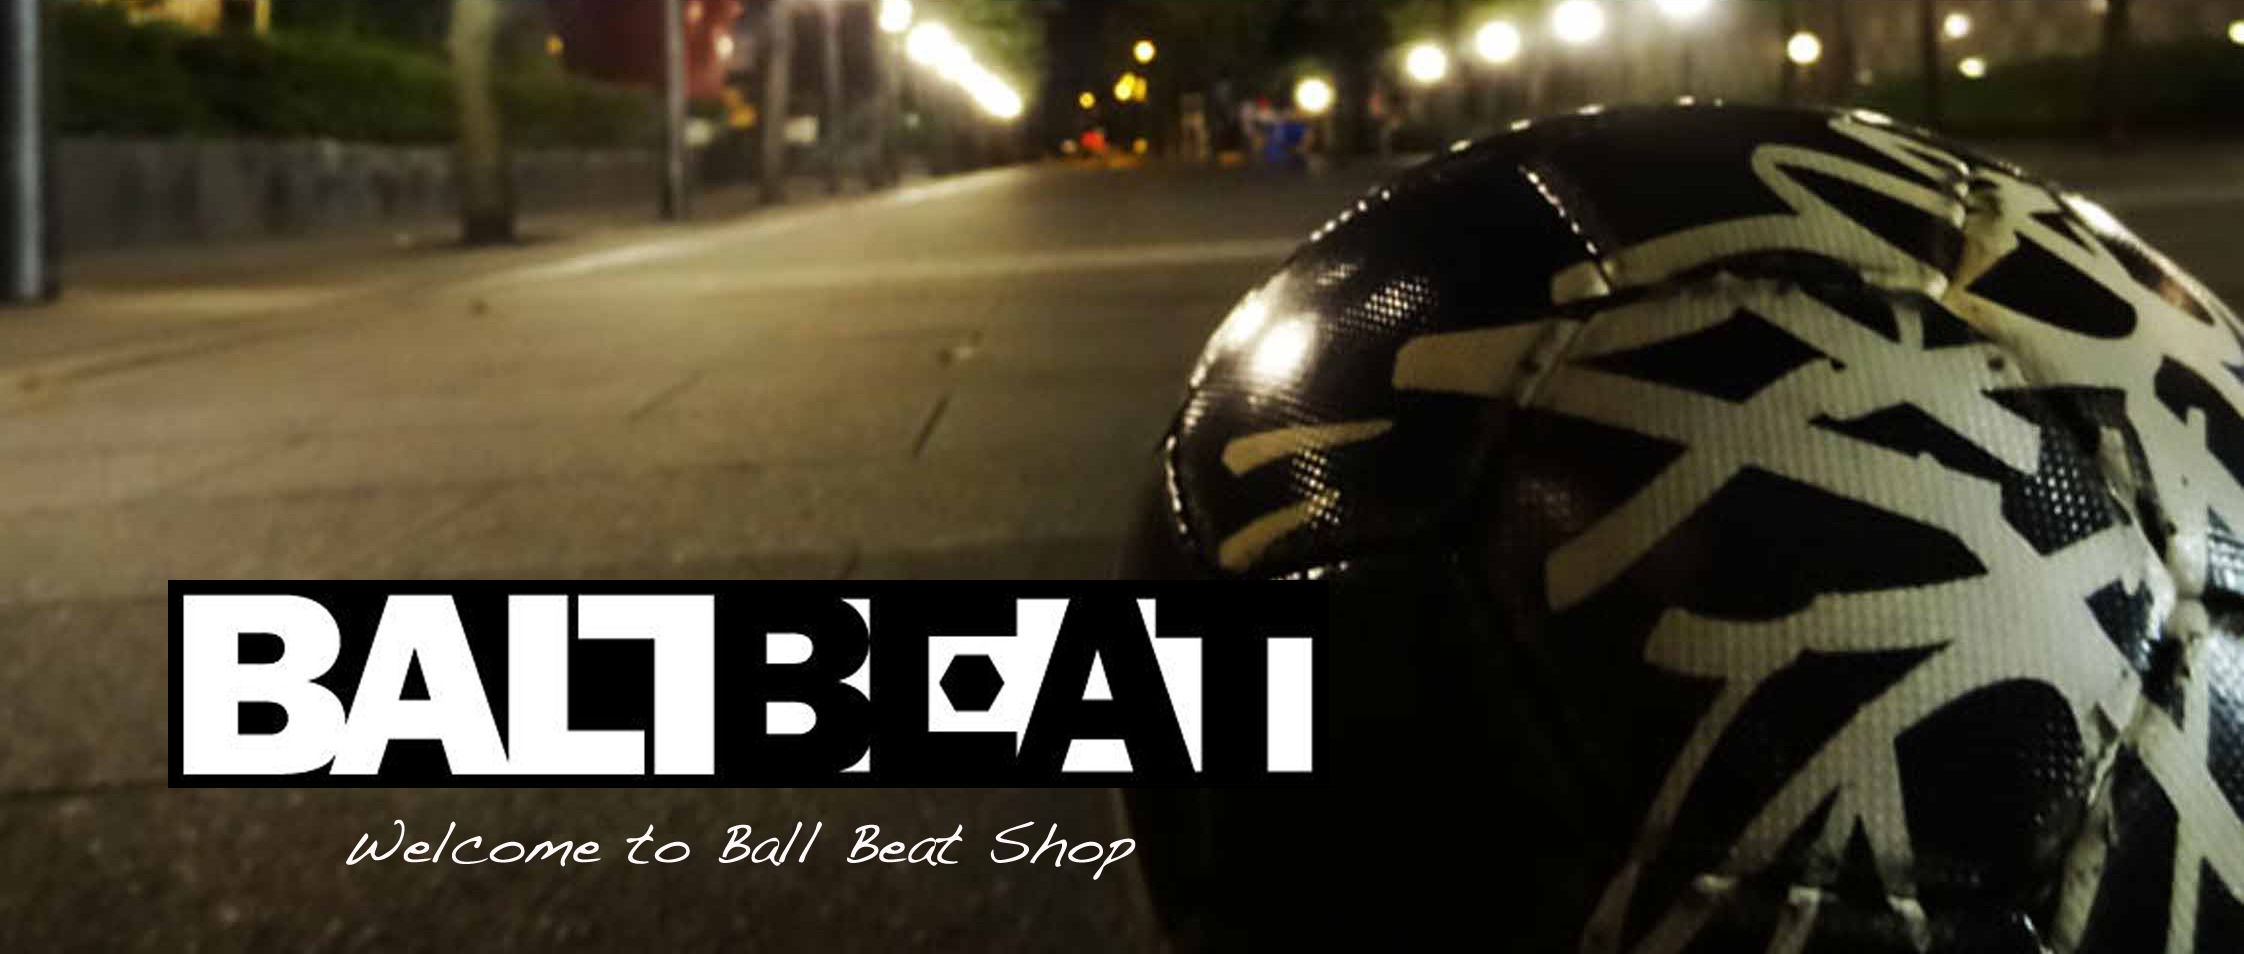 BALL BEAT SHOP